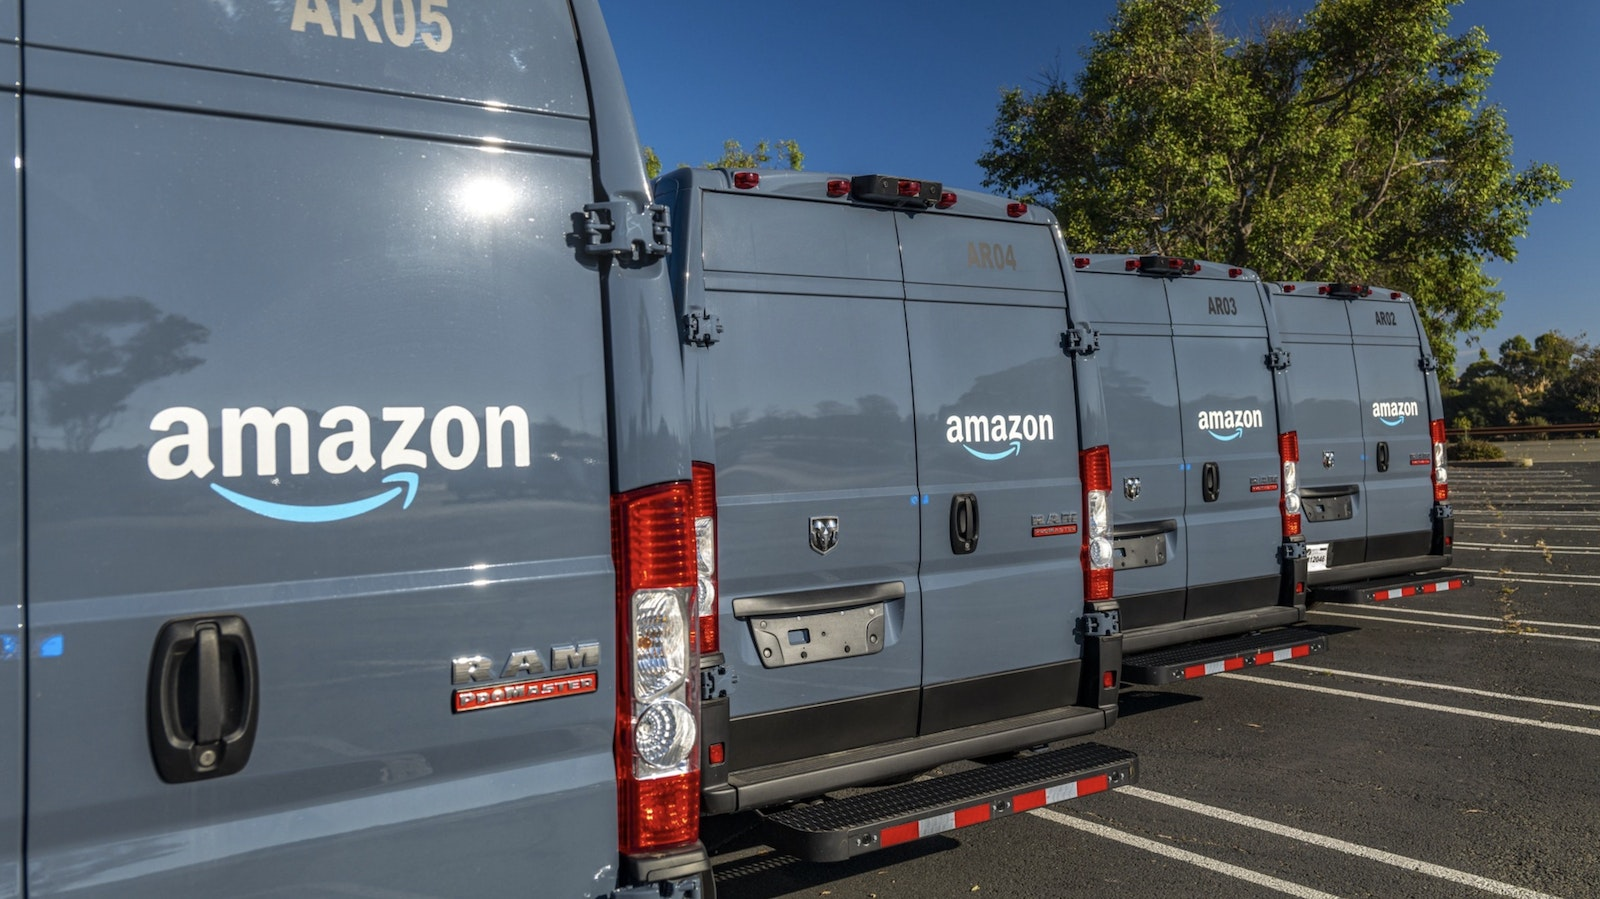 Amazon delivery trucks in Richmond, Calif. on Tuesday. Photo by Bloomberg